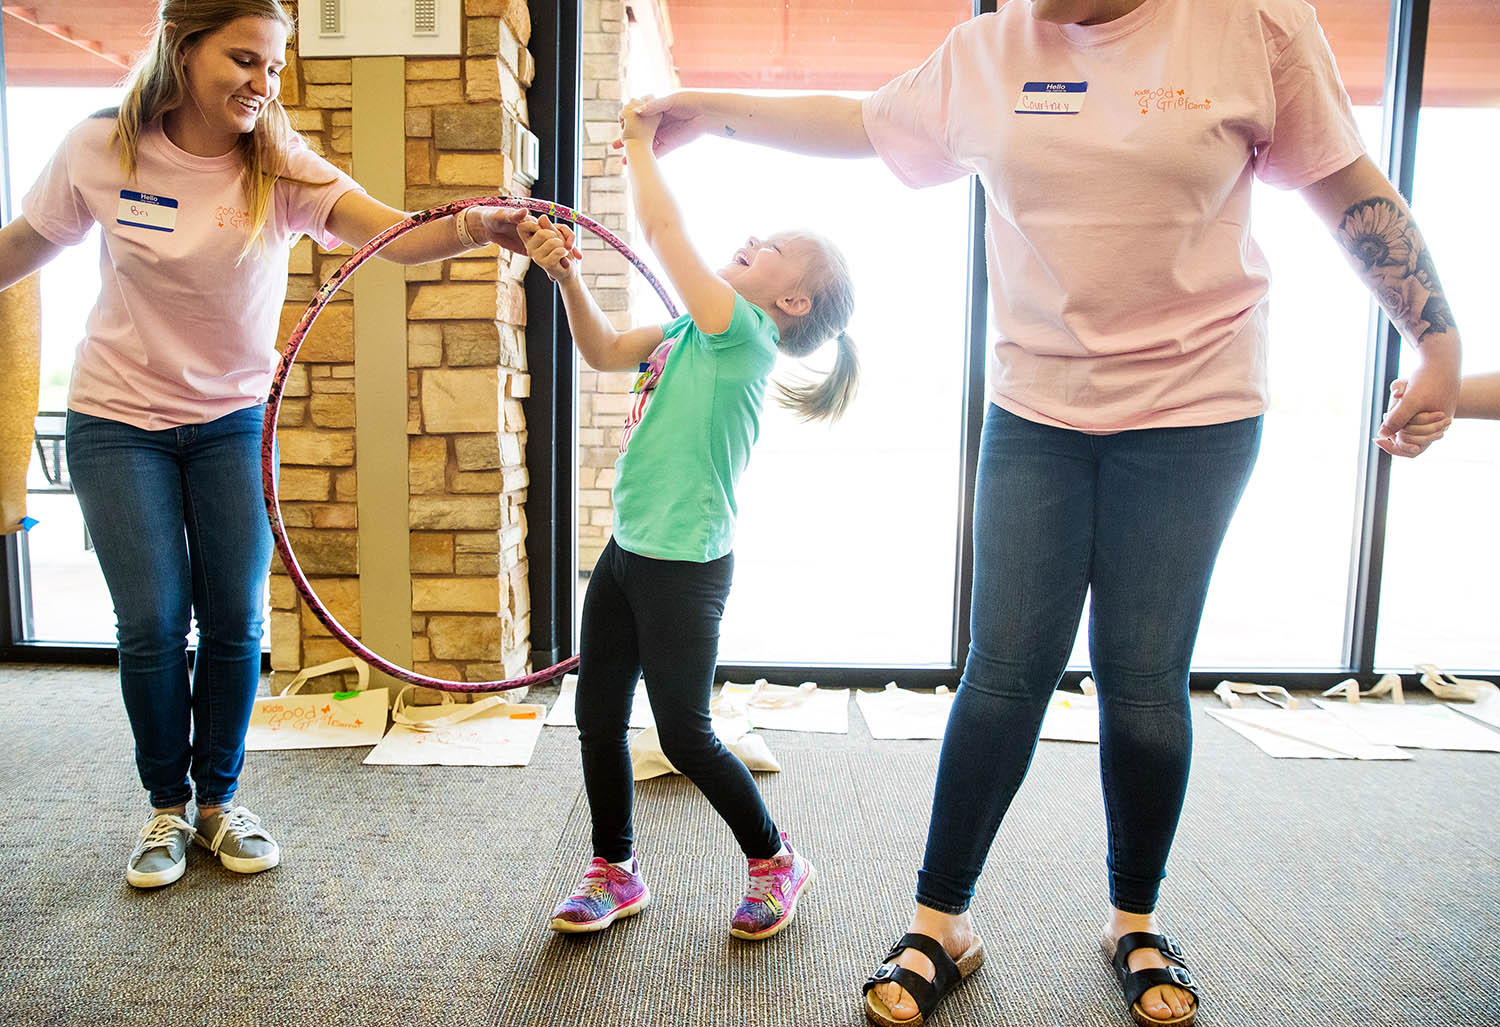 """Channing Walton, center laughs as she tries to maneuver a hoolahoop from Courtney Atwood, right to Bri Kattelman during Staab Funeral Home's annual """"Kids Good Grief Camp"""" at Erin's Pavilion at Southwind Park Sunday, April 28, 2019. The camp is designed to help young grievers cope with the death of a loved one. [Ted Schurter/The State Journal-Register]"""